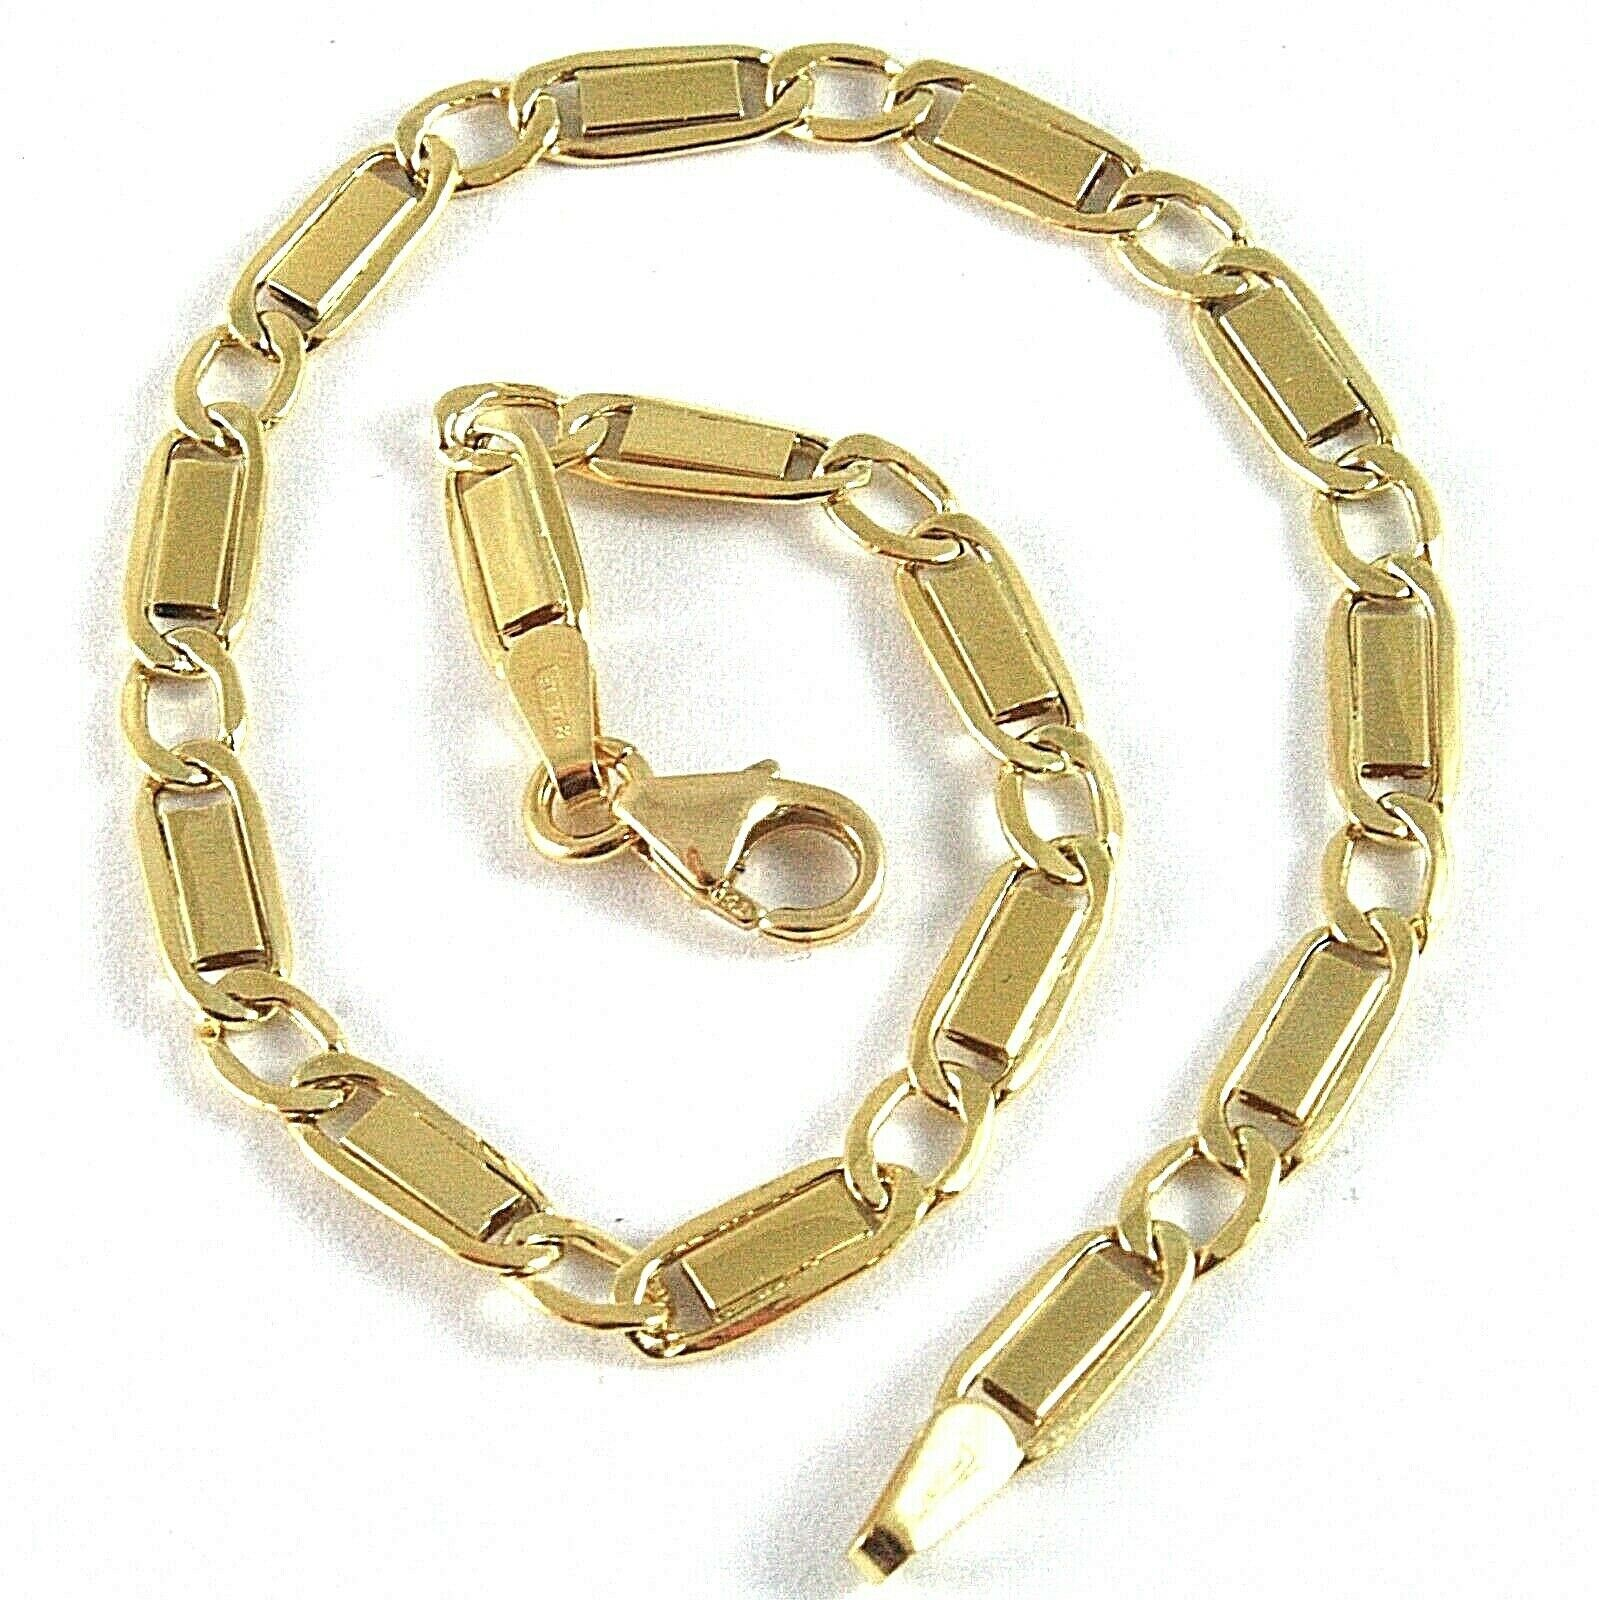 18K YELLOW GOLD BRACELET WITH FLAT ALTERNATE 4 MM OVAL  LINK MADE IN ITALY